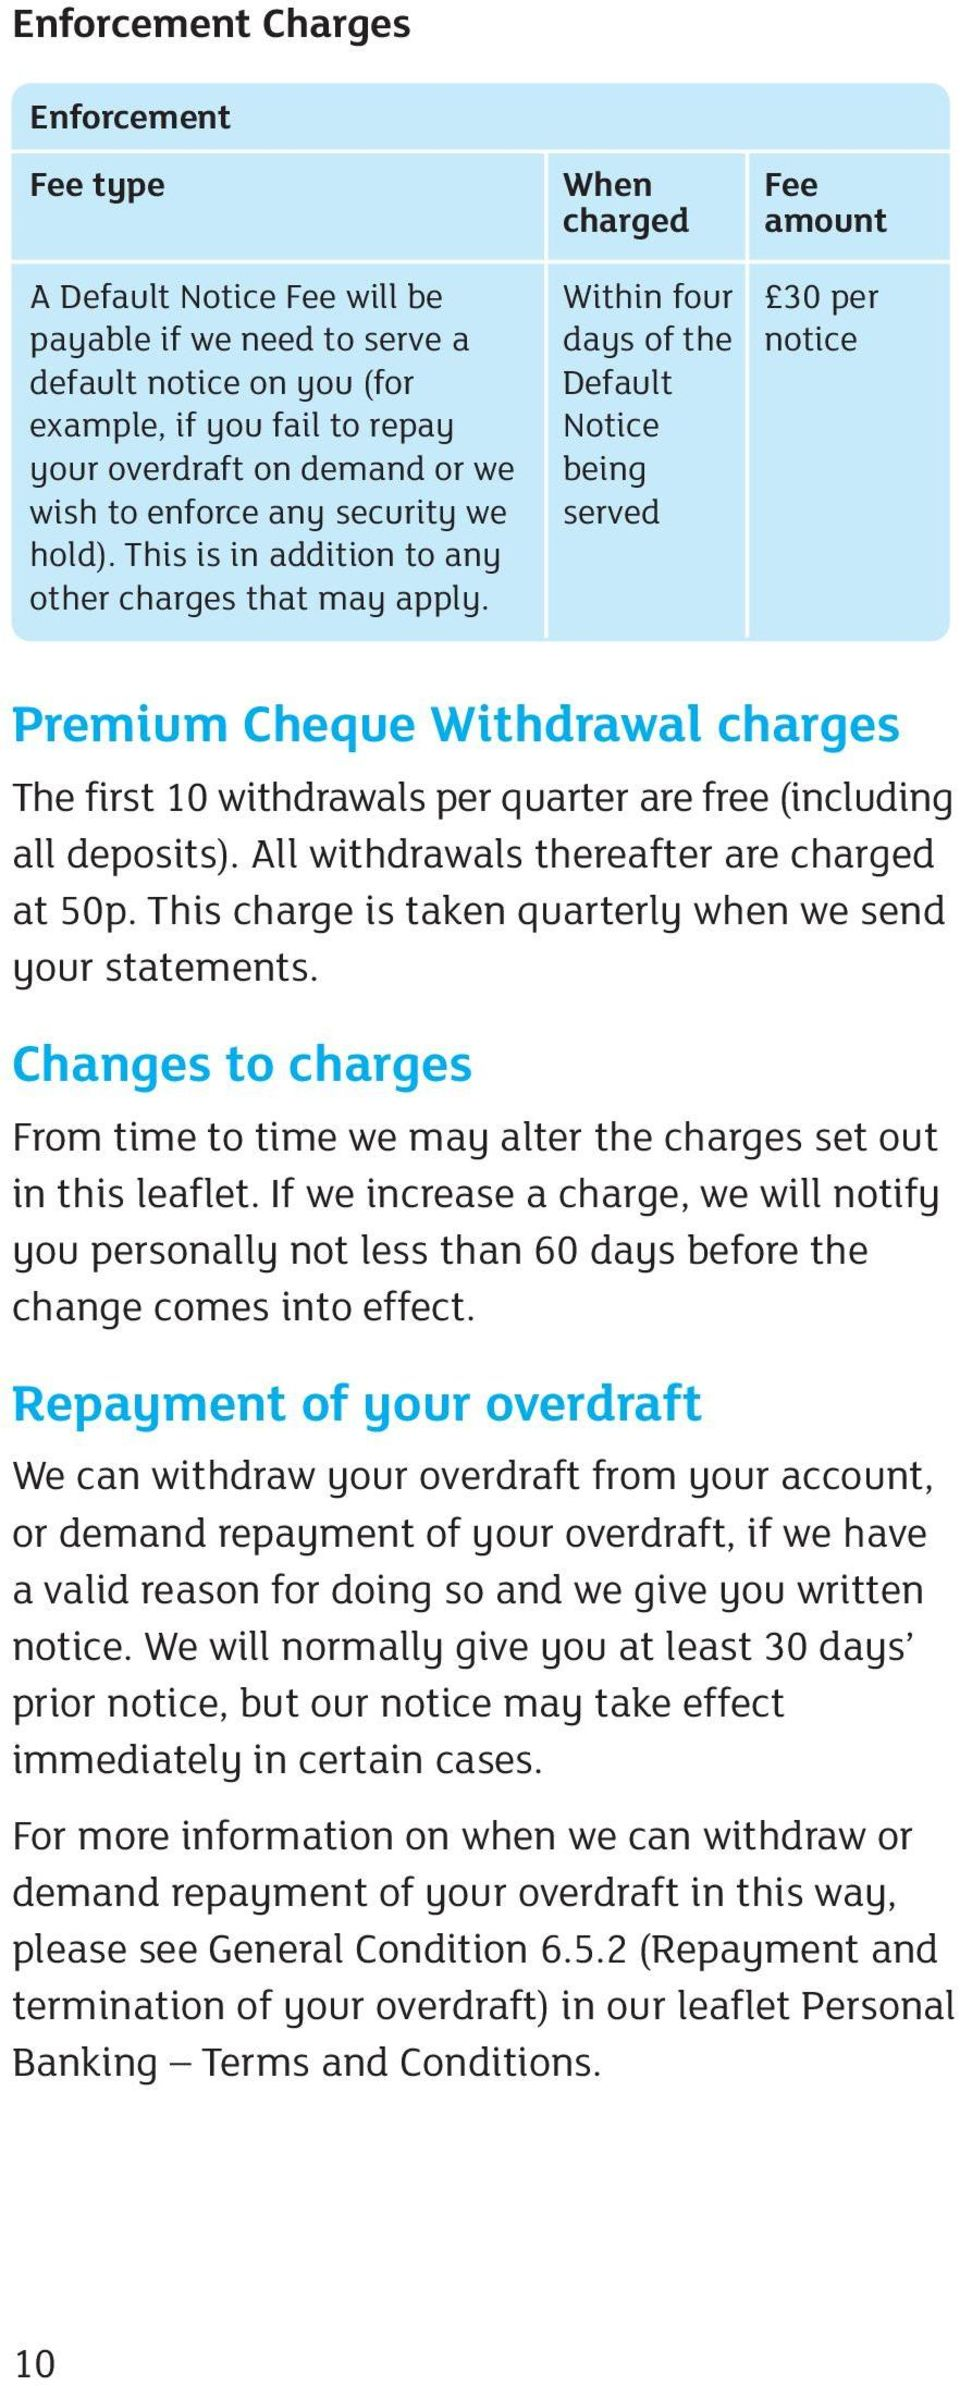 Within four days of the Default Notice being served 30 per notice Premium Cheque Withdrawal charges The first 10 withdrawals per quarter are free (including all deposits).